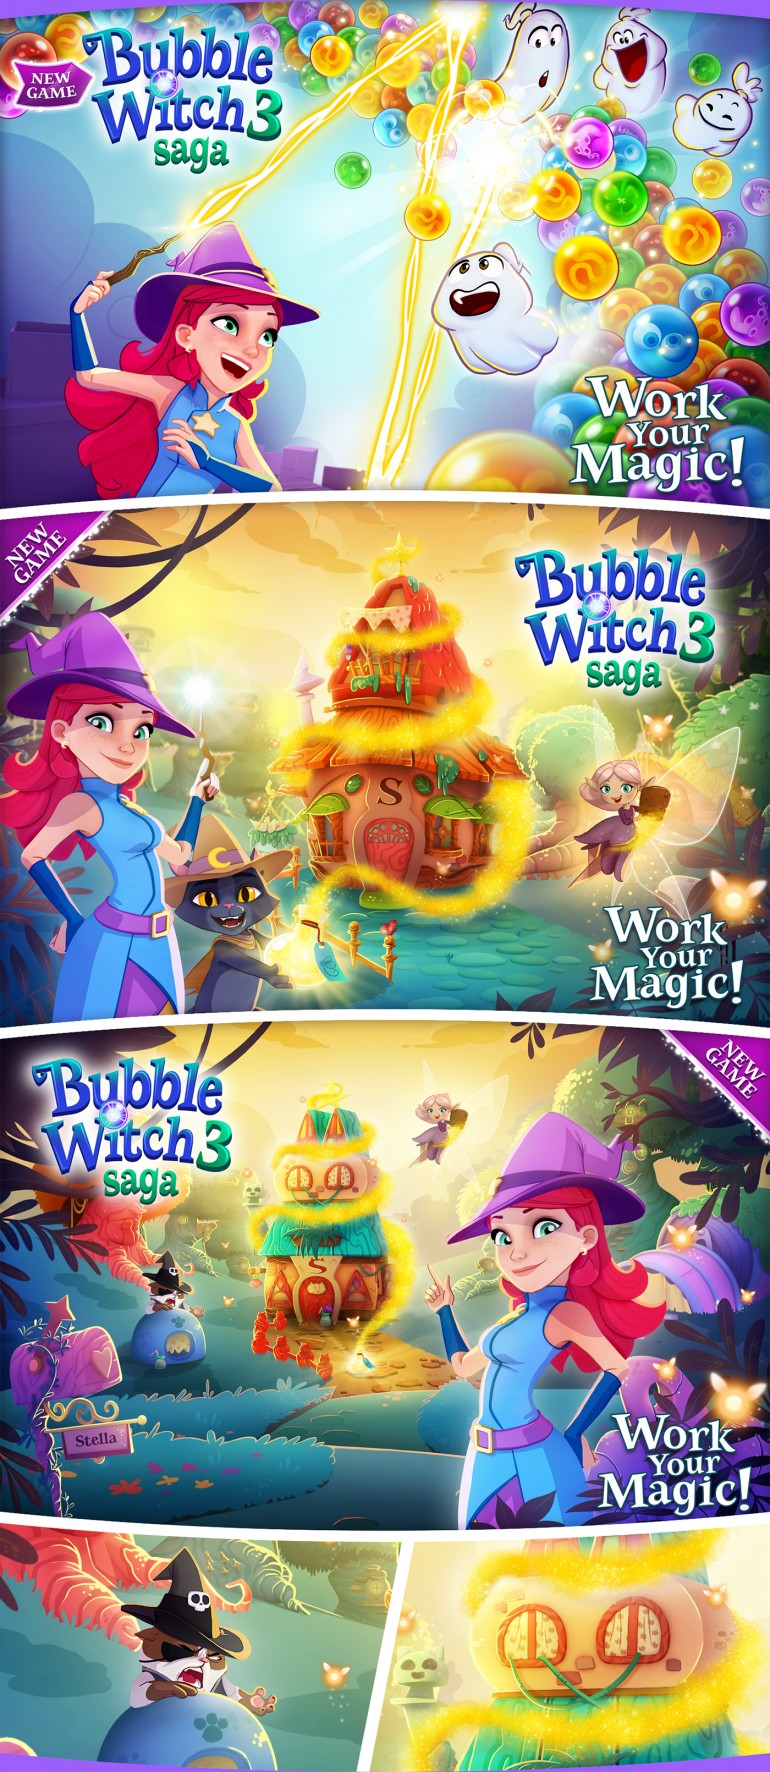 Bubble Witch 3 saga – Launch Campaign